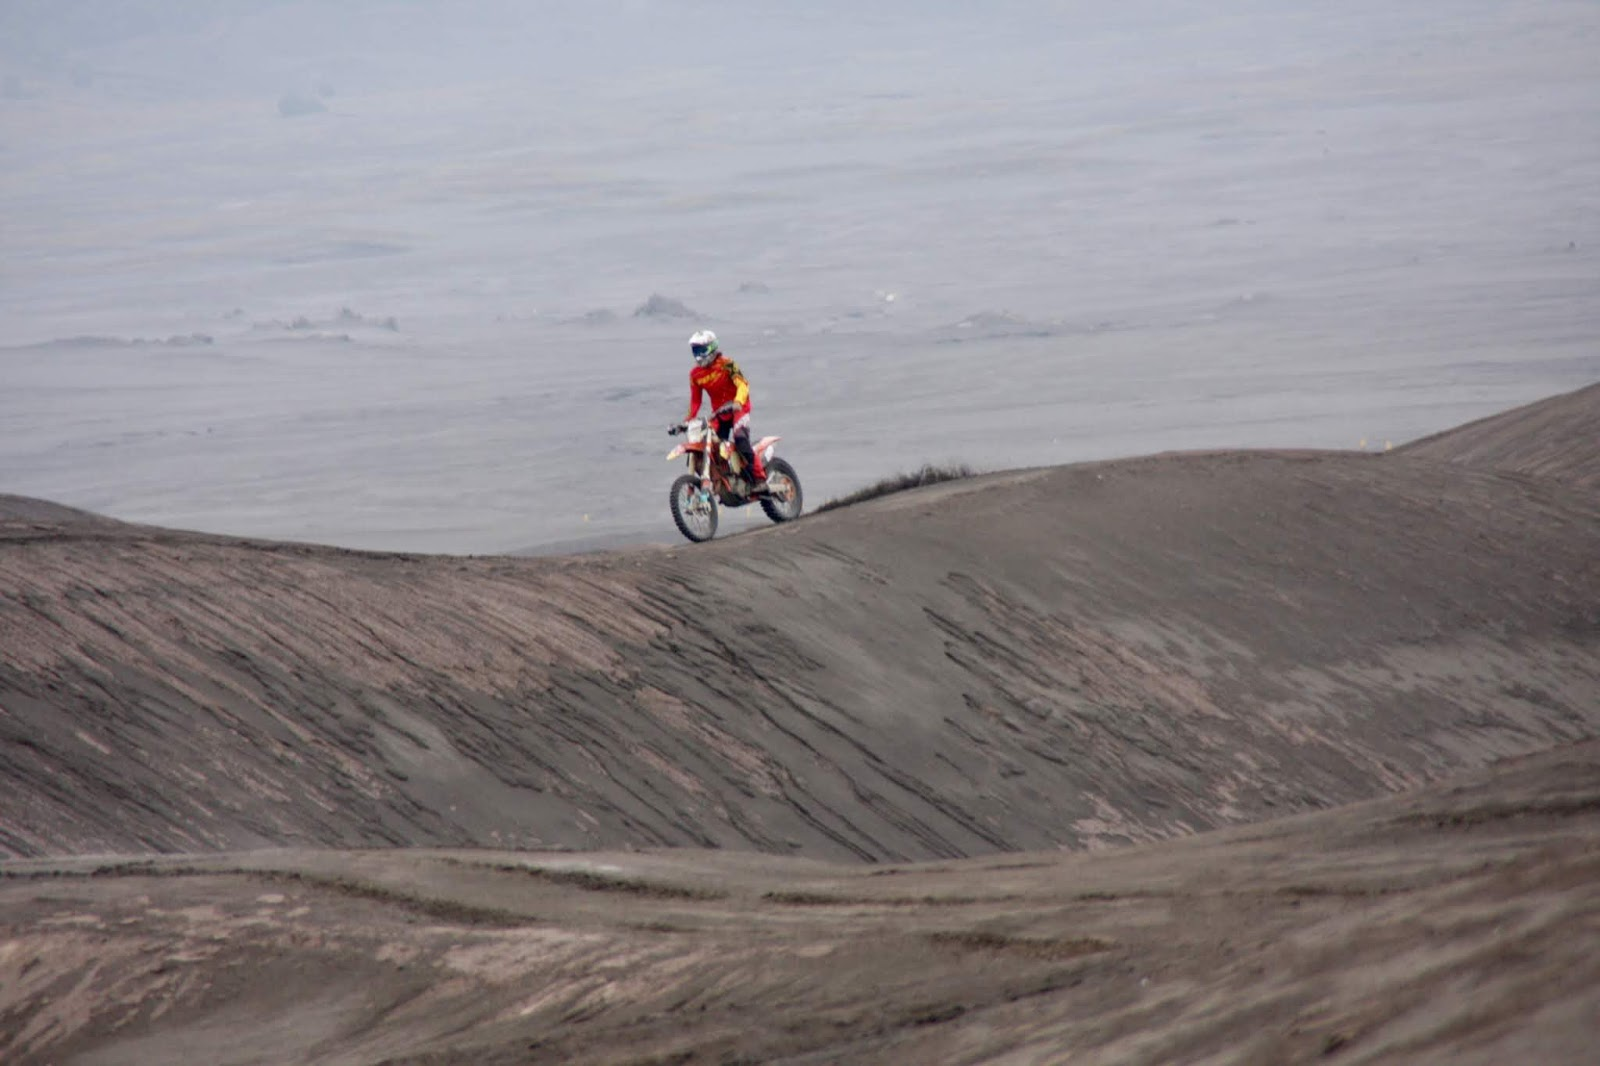 Going to bromo by jeep is so last year if you are feeling adventurous you must join our bromo dirt bike tours driving through the trails on your own bike